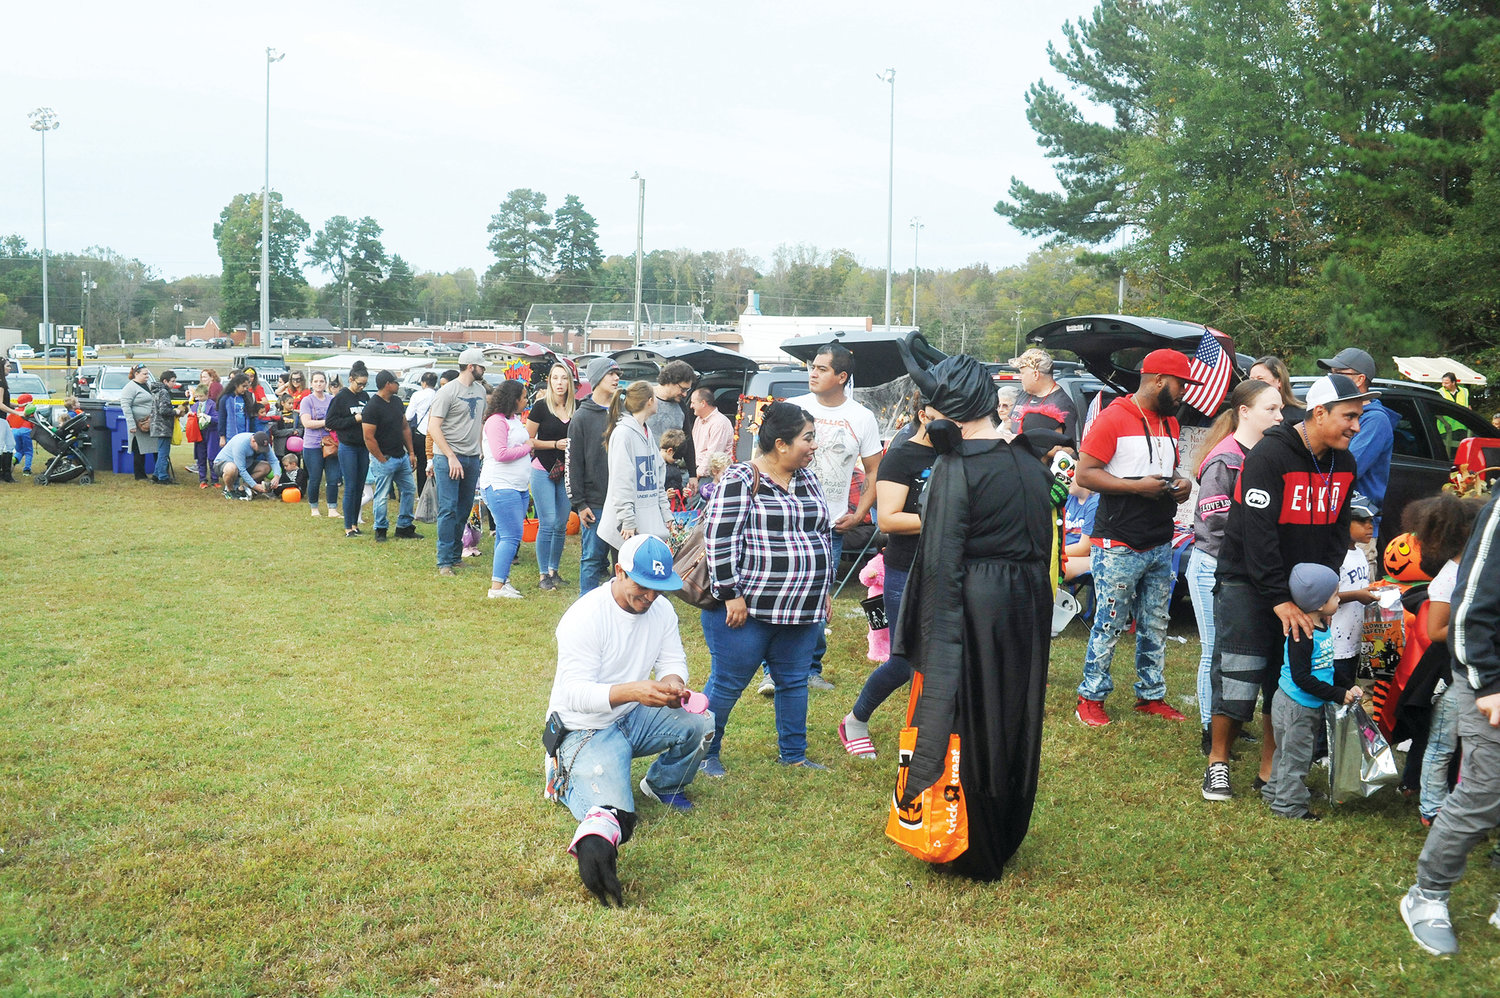 The lines were long, but the candy was sooooo good!.Snaking around the ball field perimeter at Bray Park last Friday night was a long line of families and costumed children getting Halloween candy from groups around the park. The third annual Fall-O-Ween and Trunk 'r Treat event brought carloads of kids and their parents for the free event that finished with a movie under the stars.